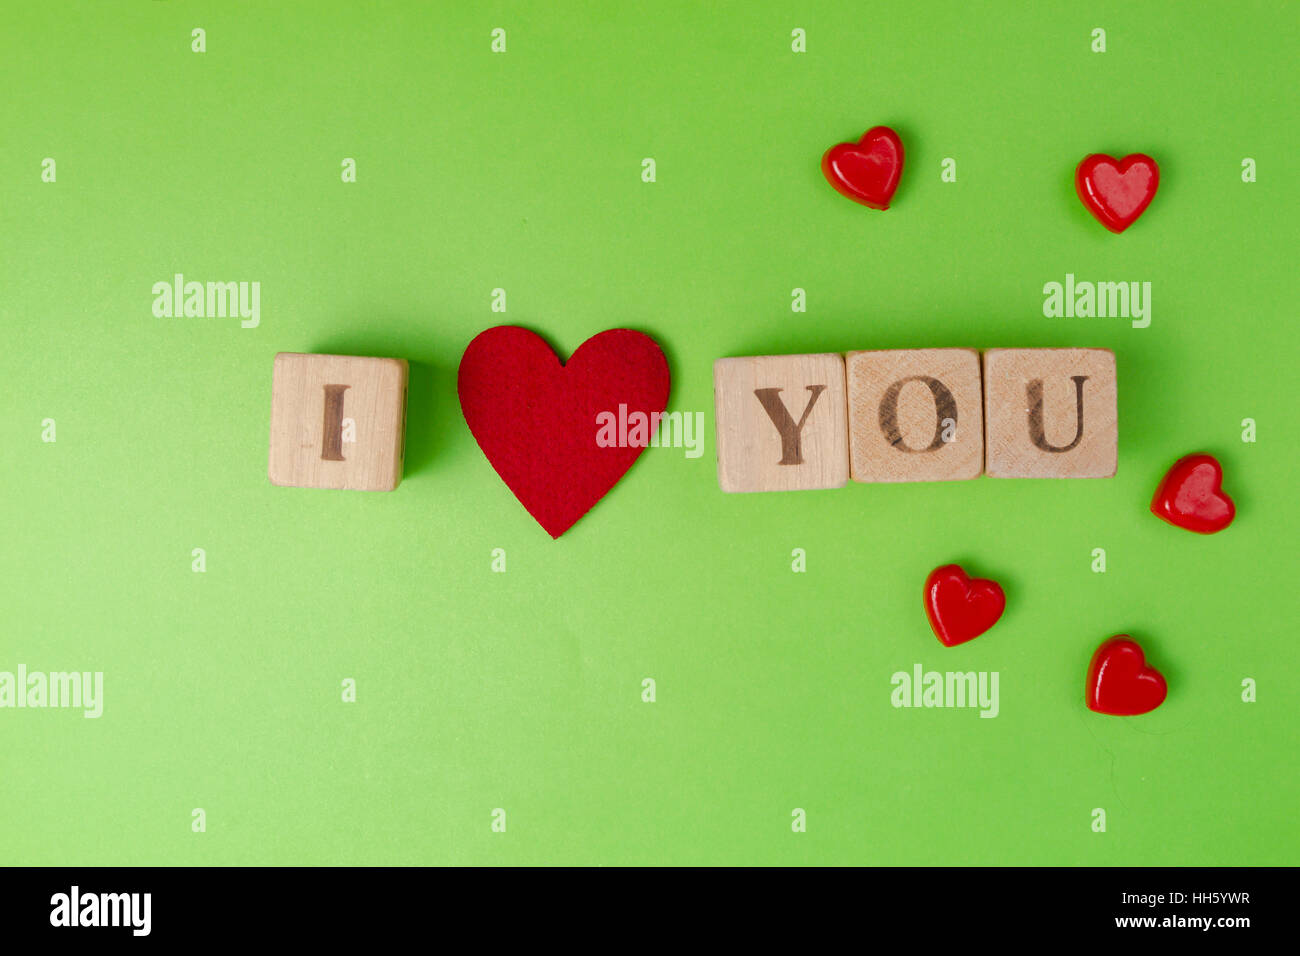 Valentine Hearts And Rustic Alphabet Blocks That Spell Out I Love You On  Greenery Background.